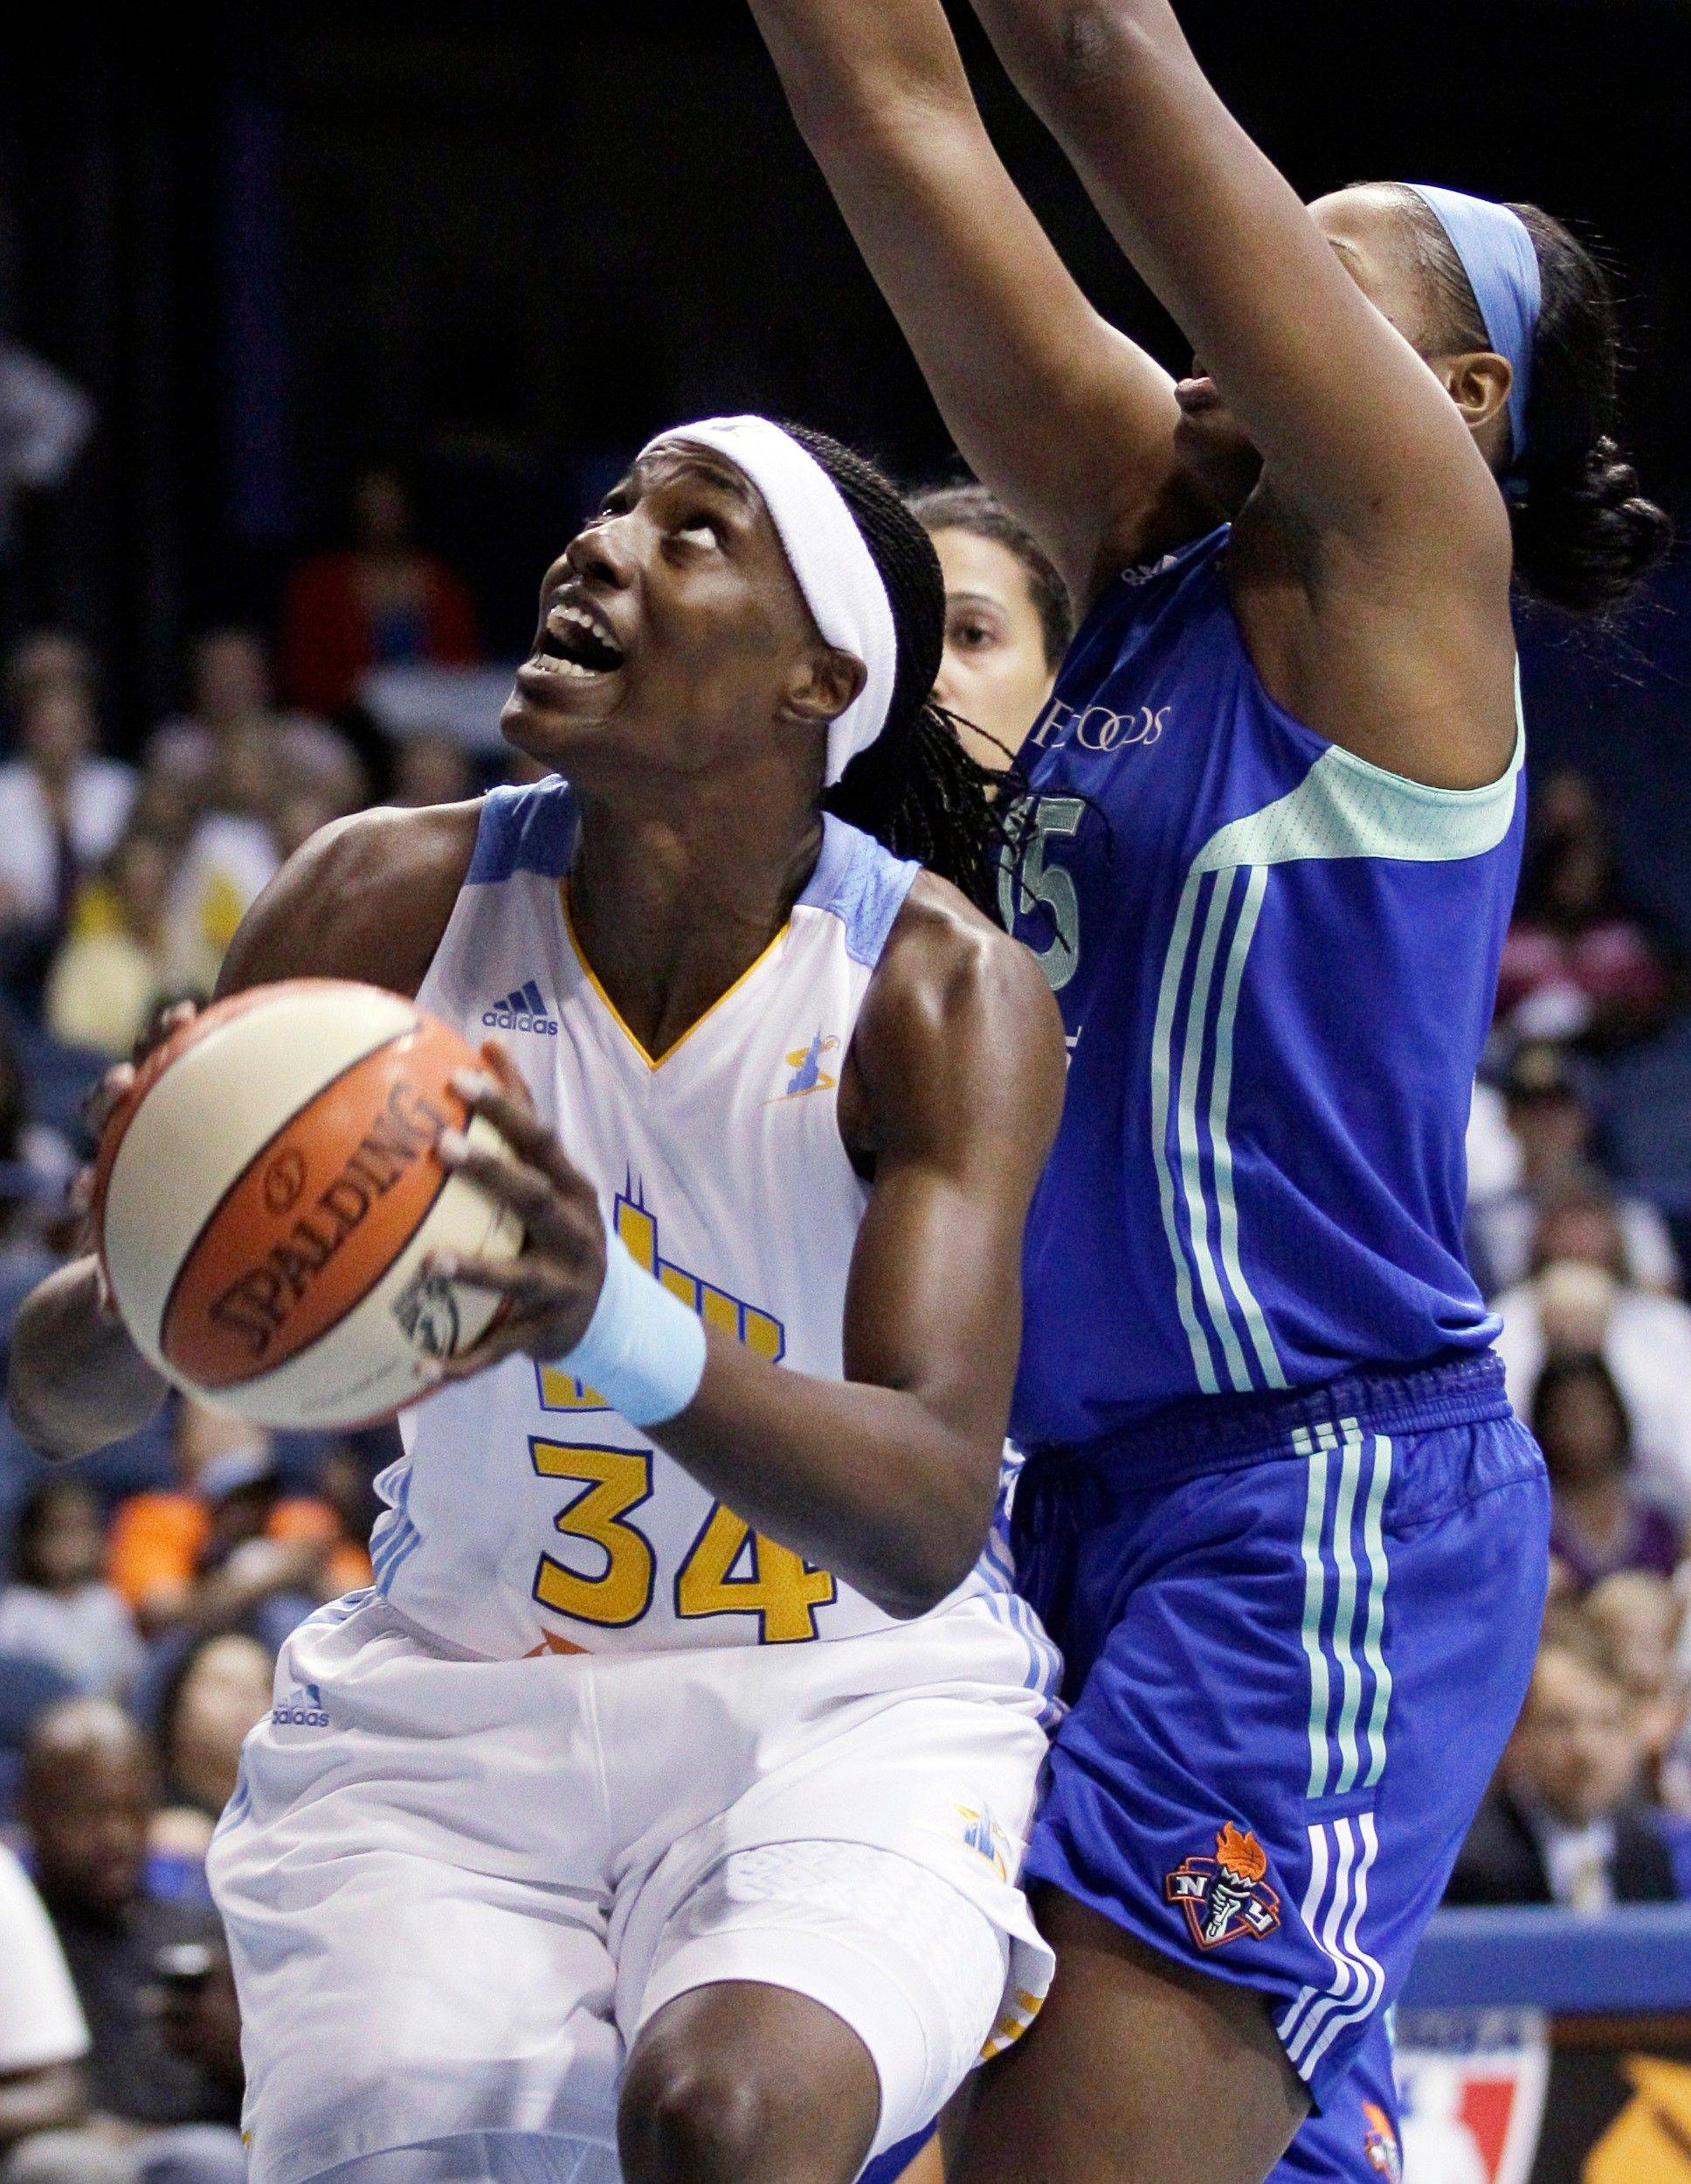 Chicago Sky�s Sylvia Fowles, left, looks to the basket as New York Liberty�s Kia Vaughn guards her in their WNBA basketball game on Sunday at Allstate Arena. Fowles was named Player of the Month for August for the Eastern Conference.